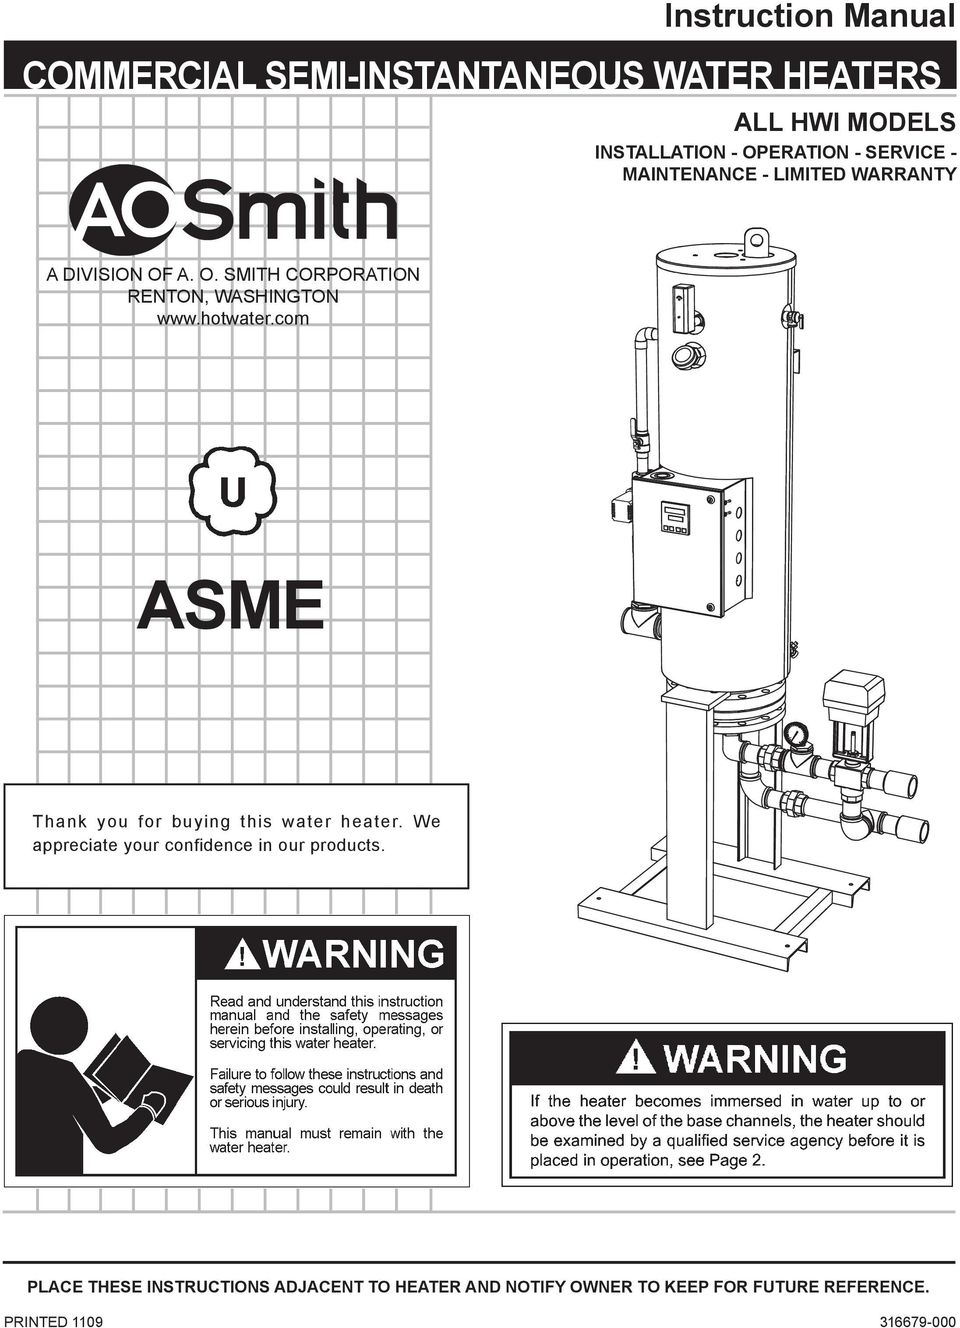 hotwater.com ASME Thank you for buying this water heater. We appreciate your confidence in our products.